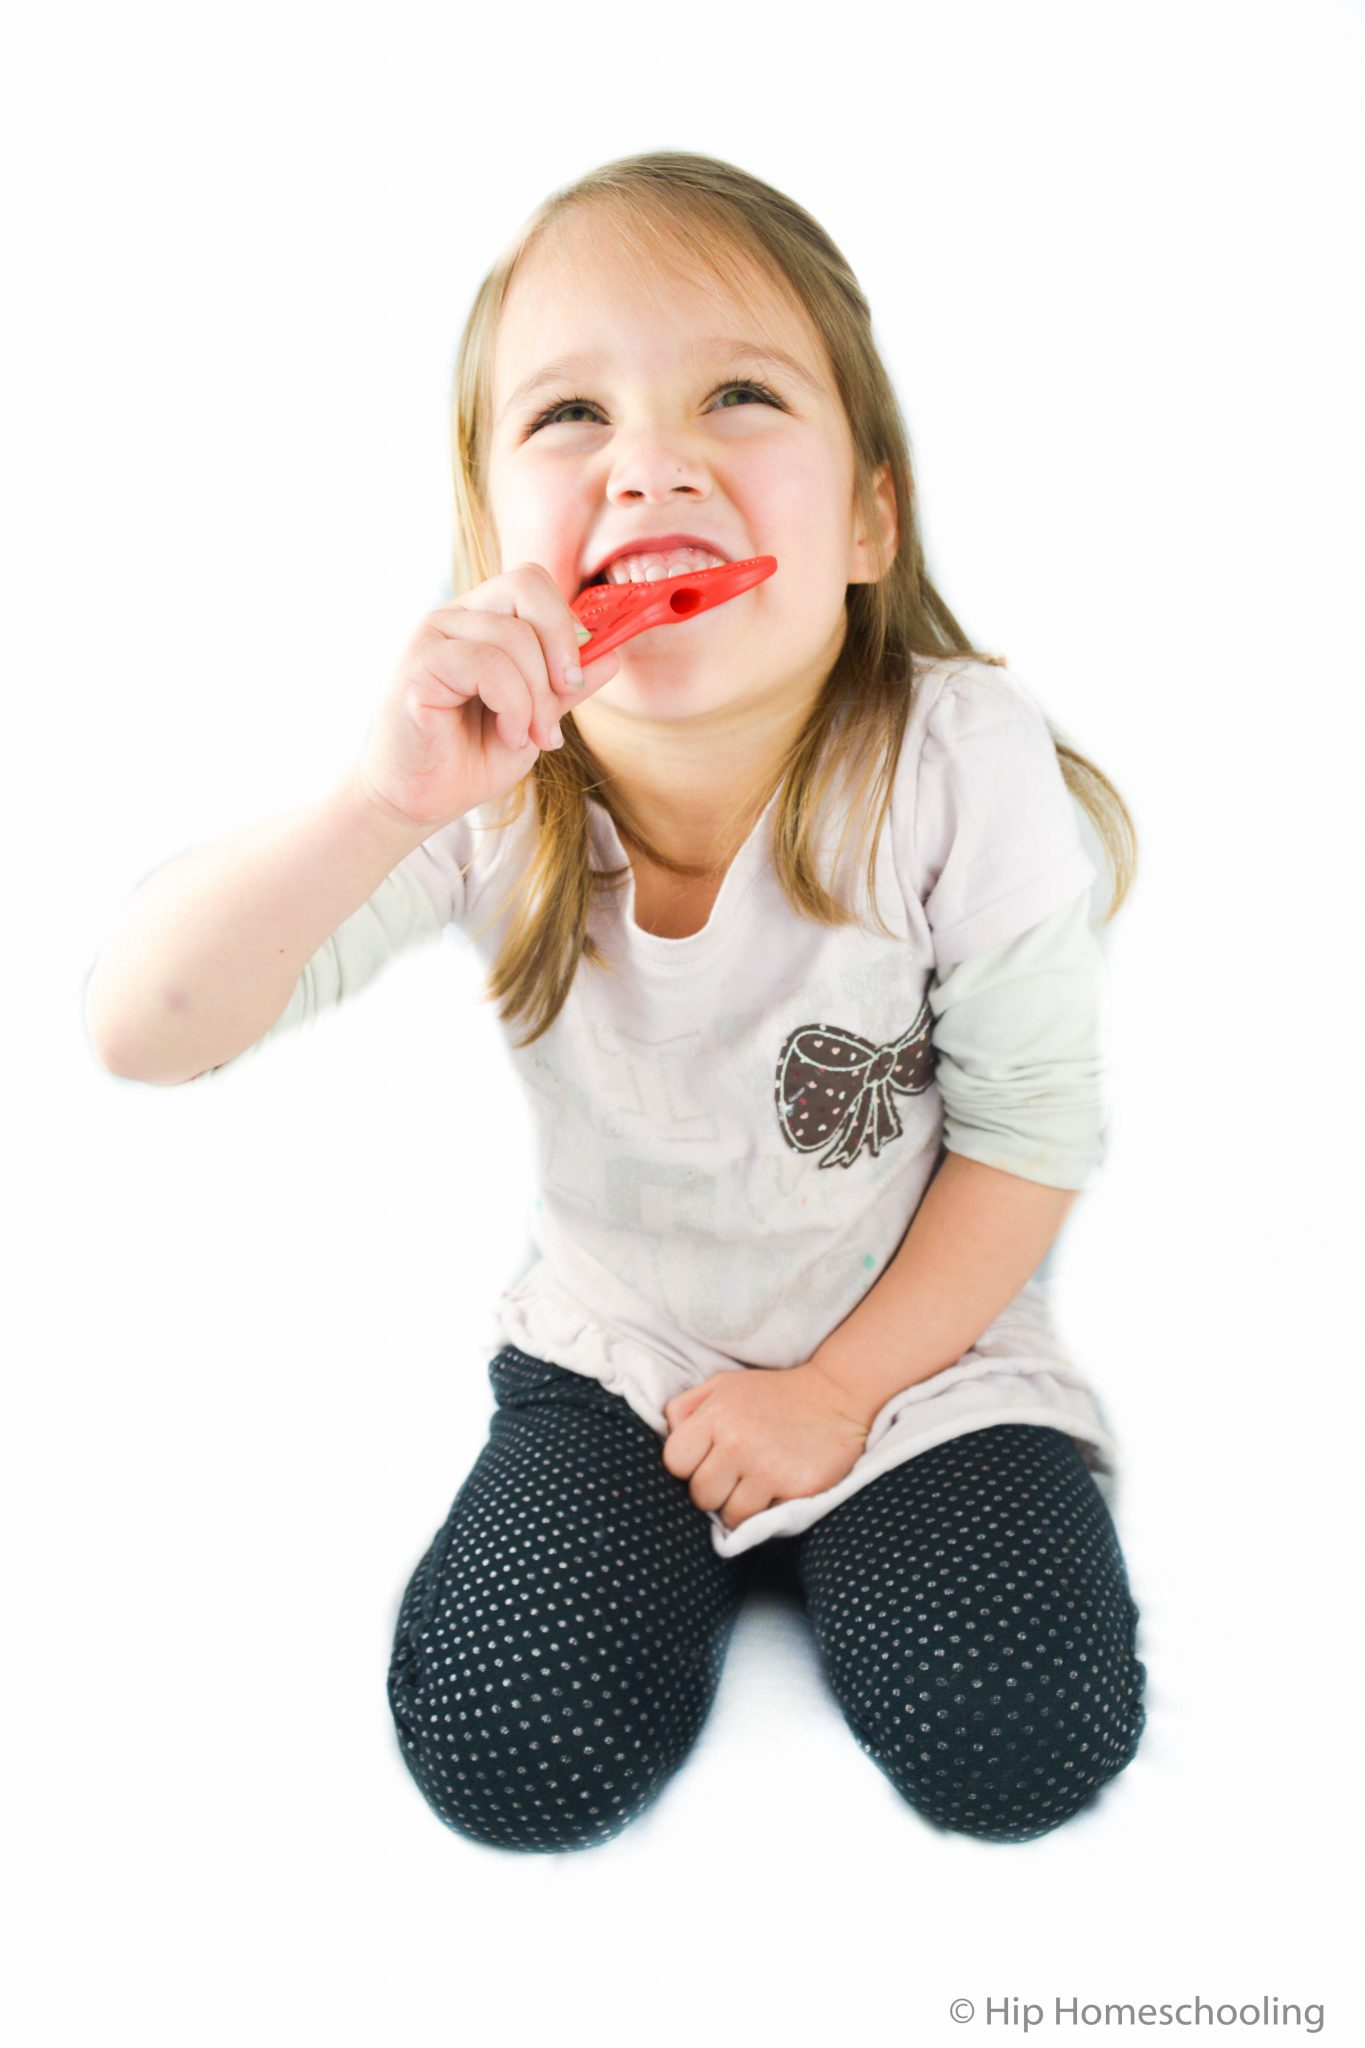 why do kids chew on their shirts? Come find out what you can do to help!